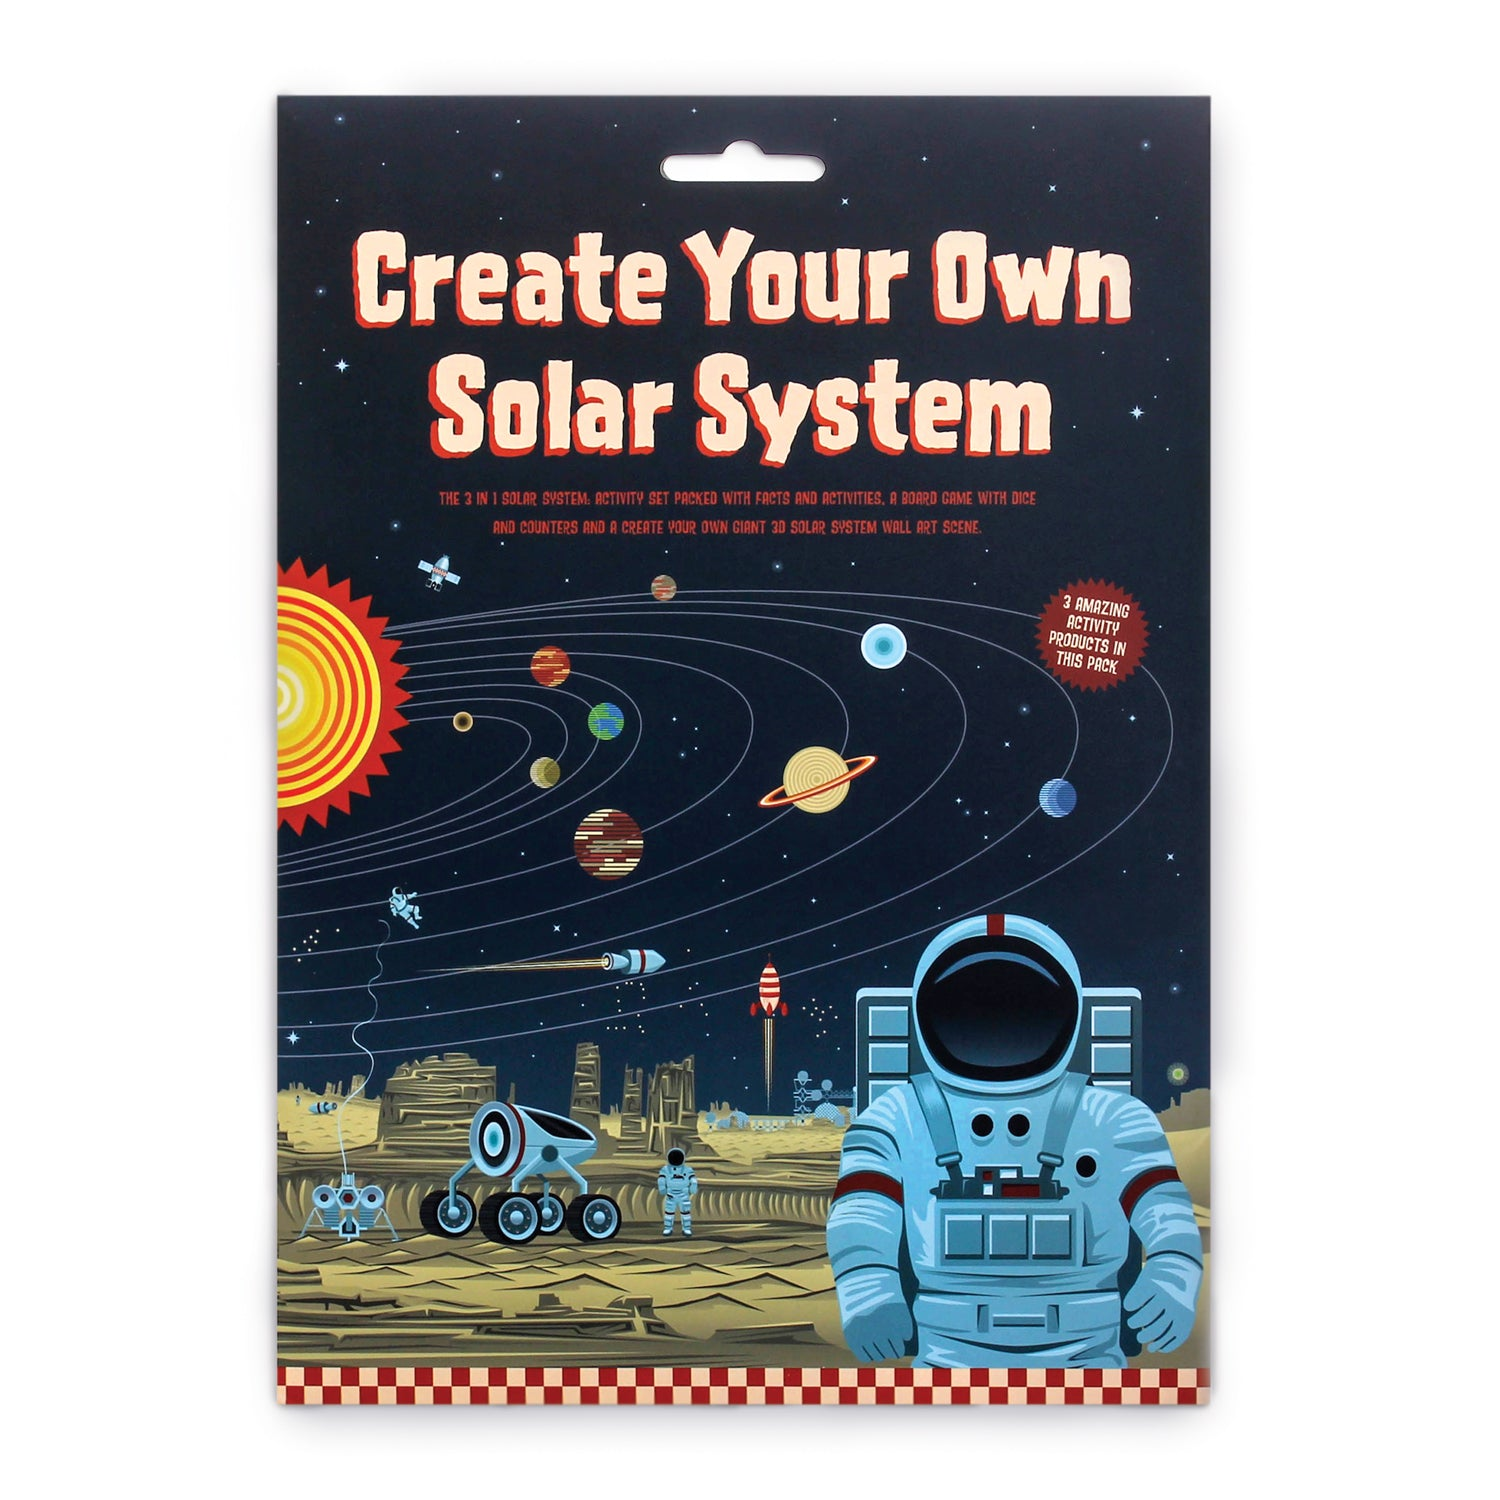 Create Your Own: Solar System